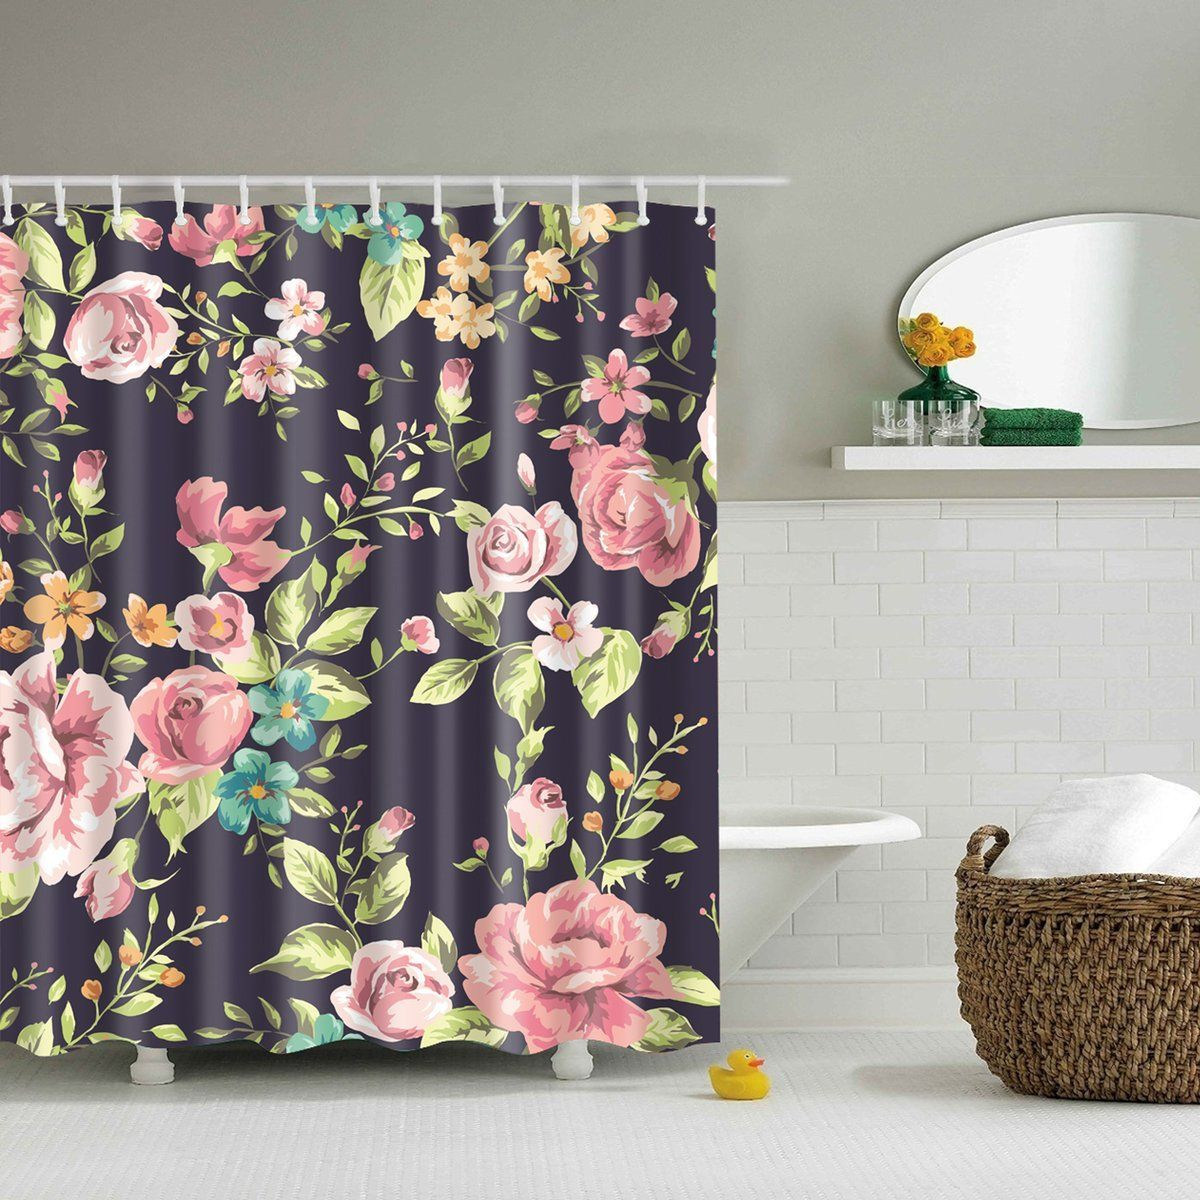 This Pink Black Floral Shower Curtain Made By Waterproof Fabric